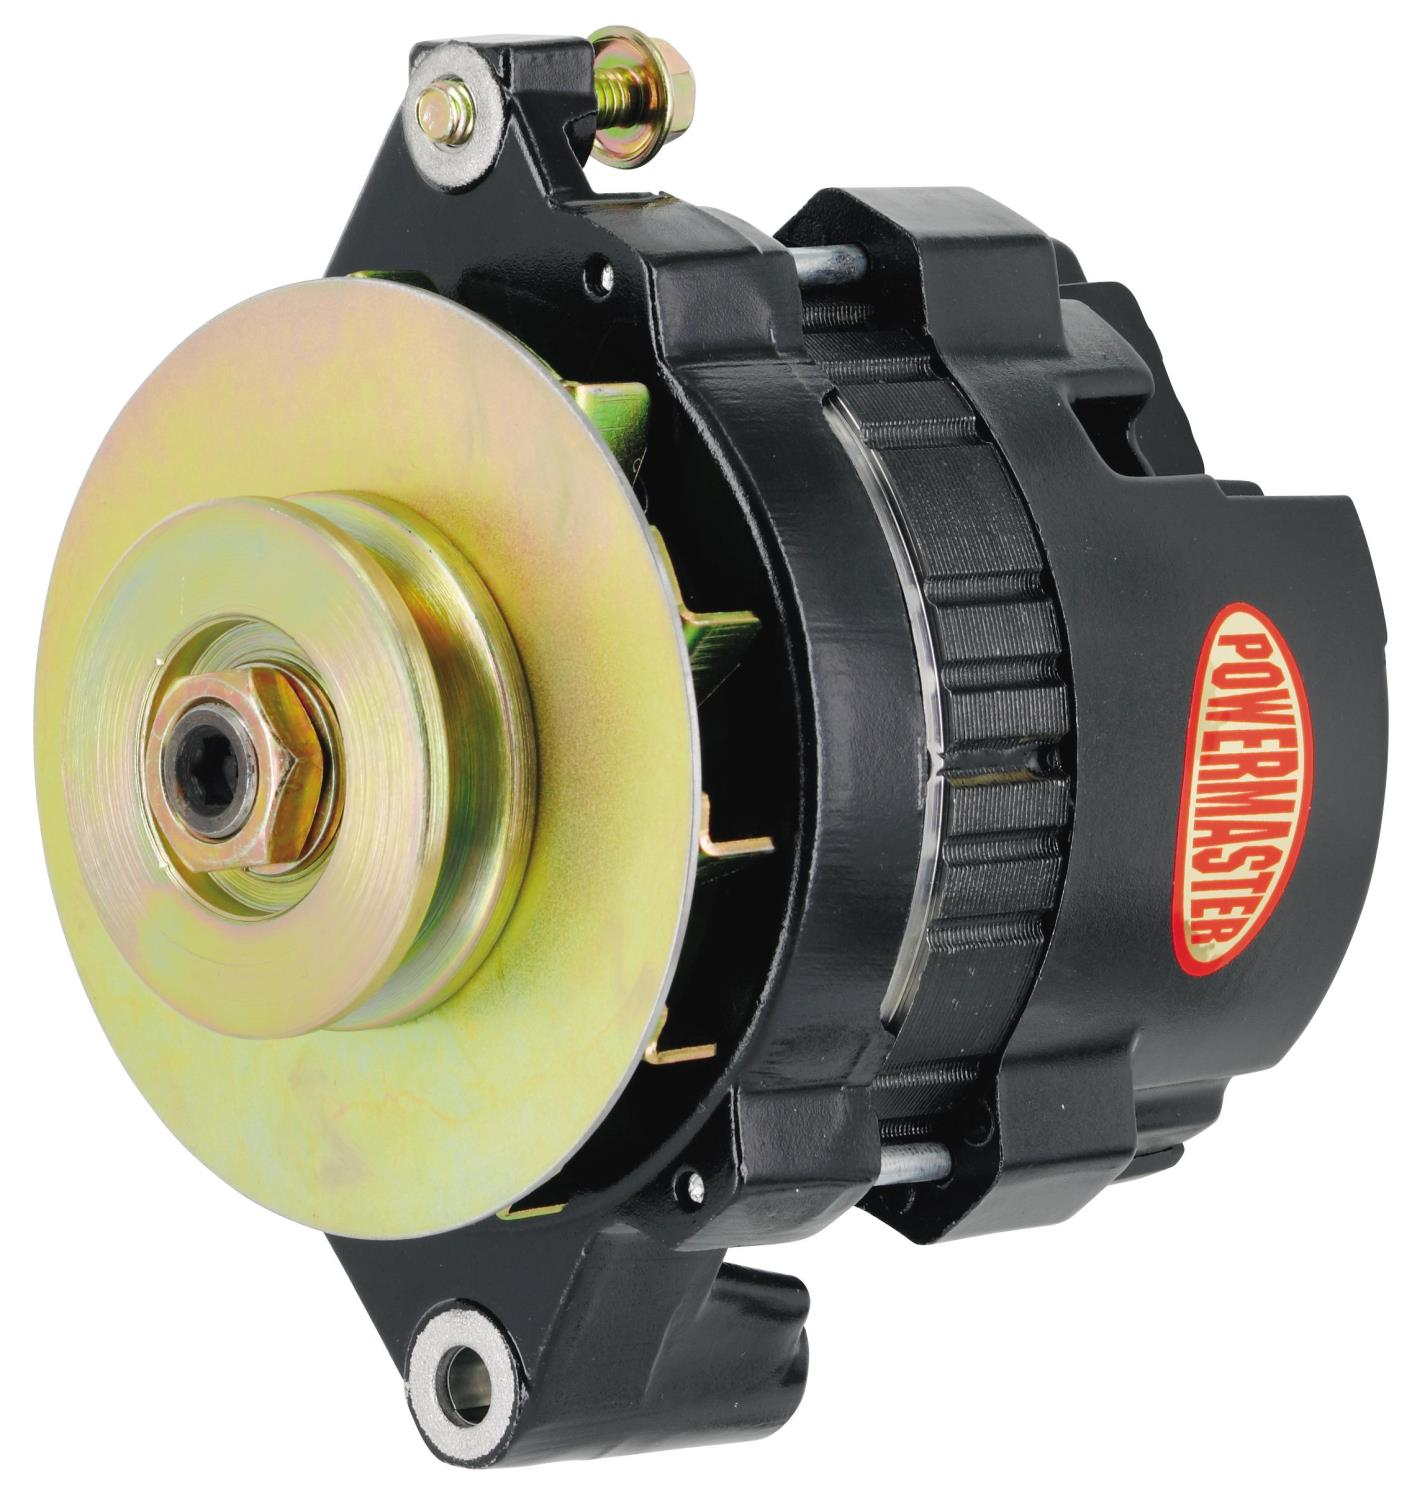 Powermaster 8462 - Powermaster GM CS121 Style 5x5 Compact Race Alternators